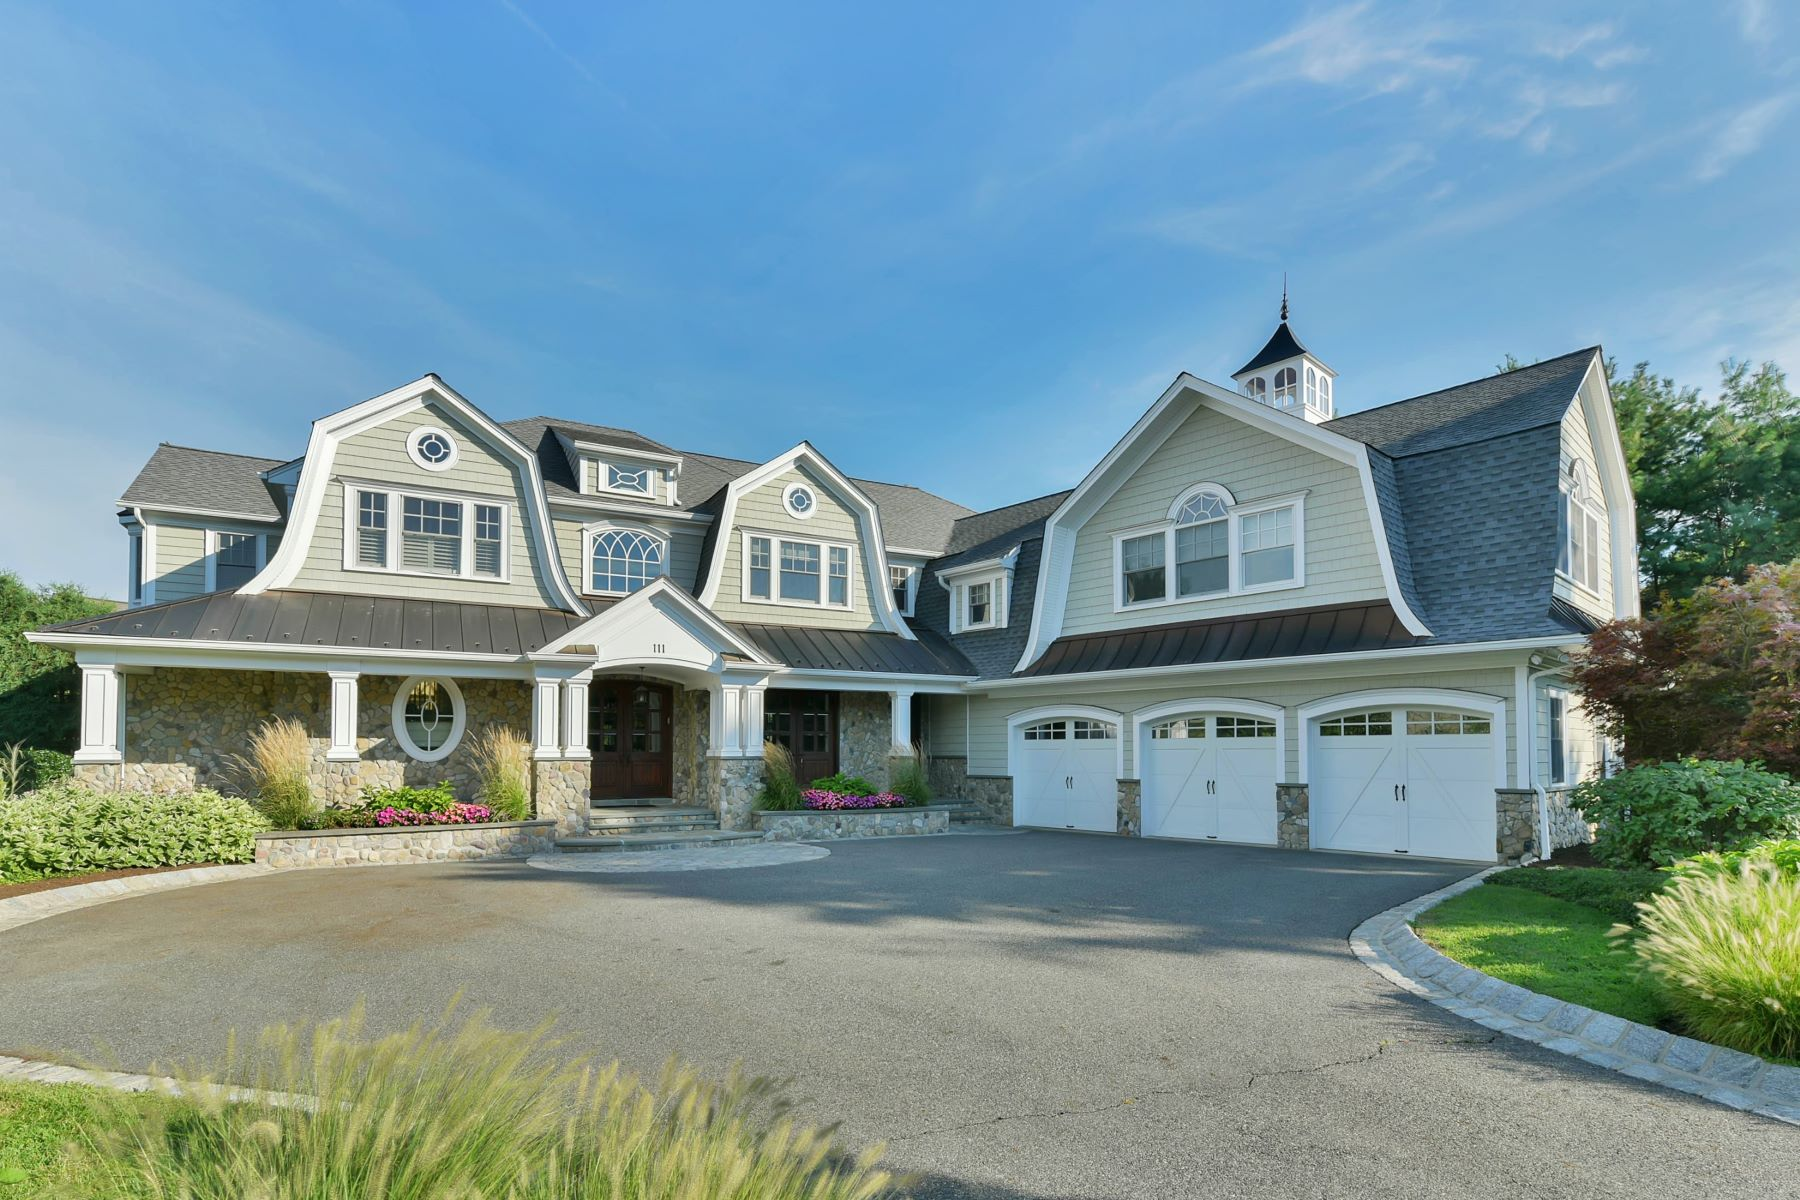 Single Family Home for Sale at Classically Elegant Hampton Style Colonial 111 Willow Pond Court Wyckoff, 07481 United States